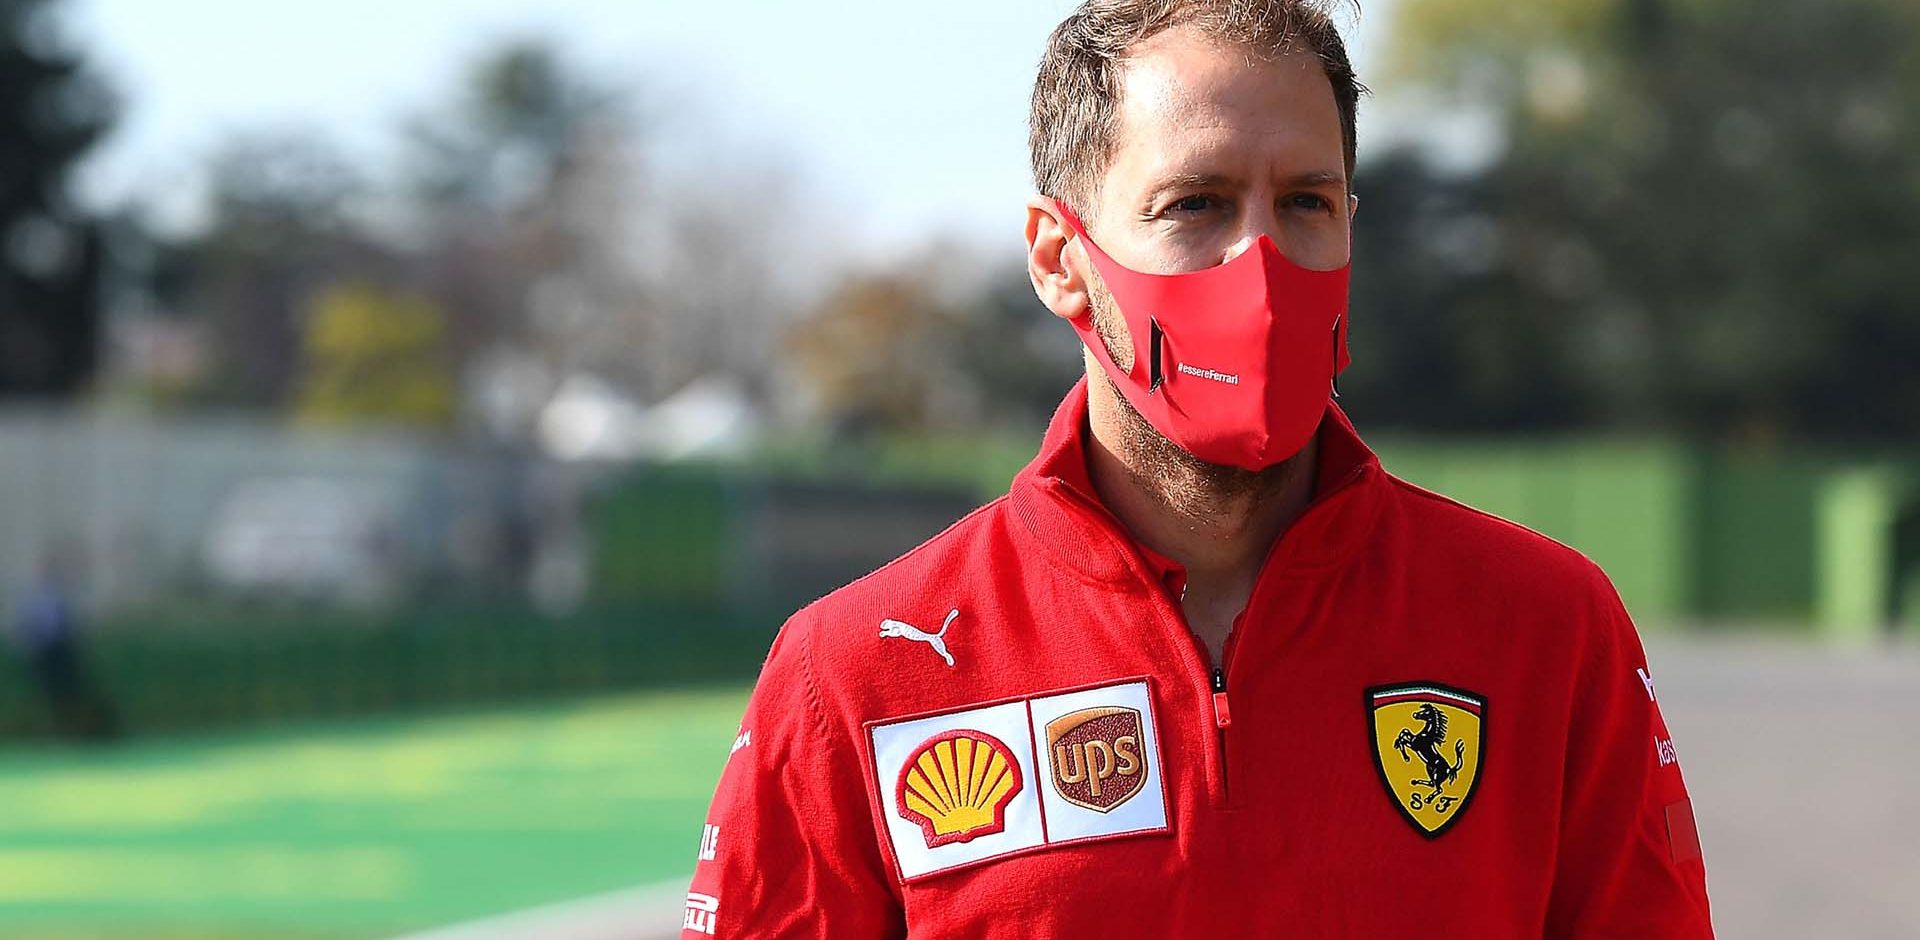 GP EMILIA ROMAGNA F1/2020 -  VENERDÌ 30/10/2020   credit: @Scuderia Ferrari Press Office Sebastian Vettel